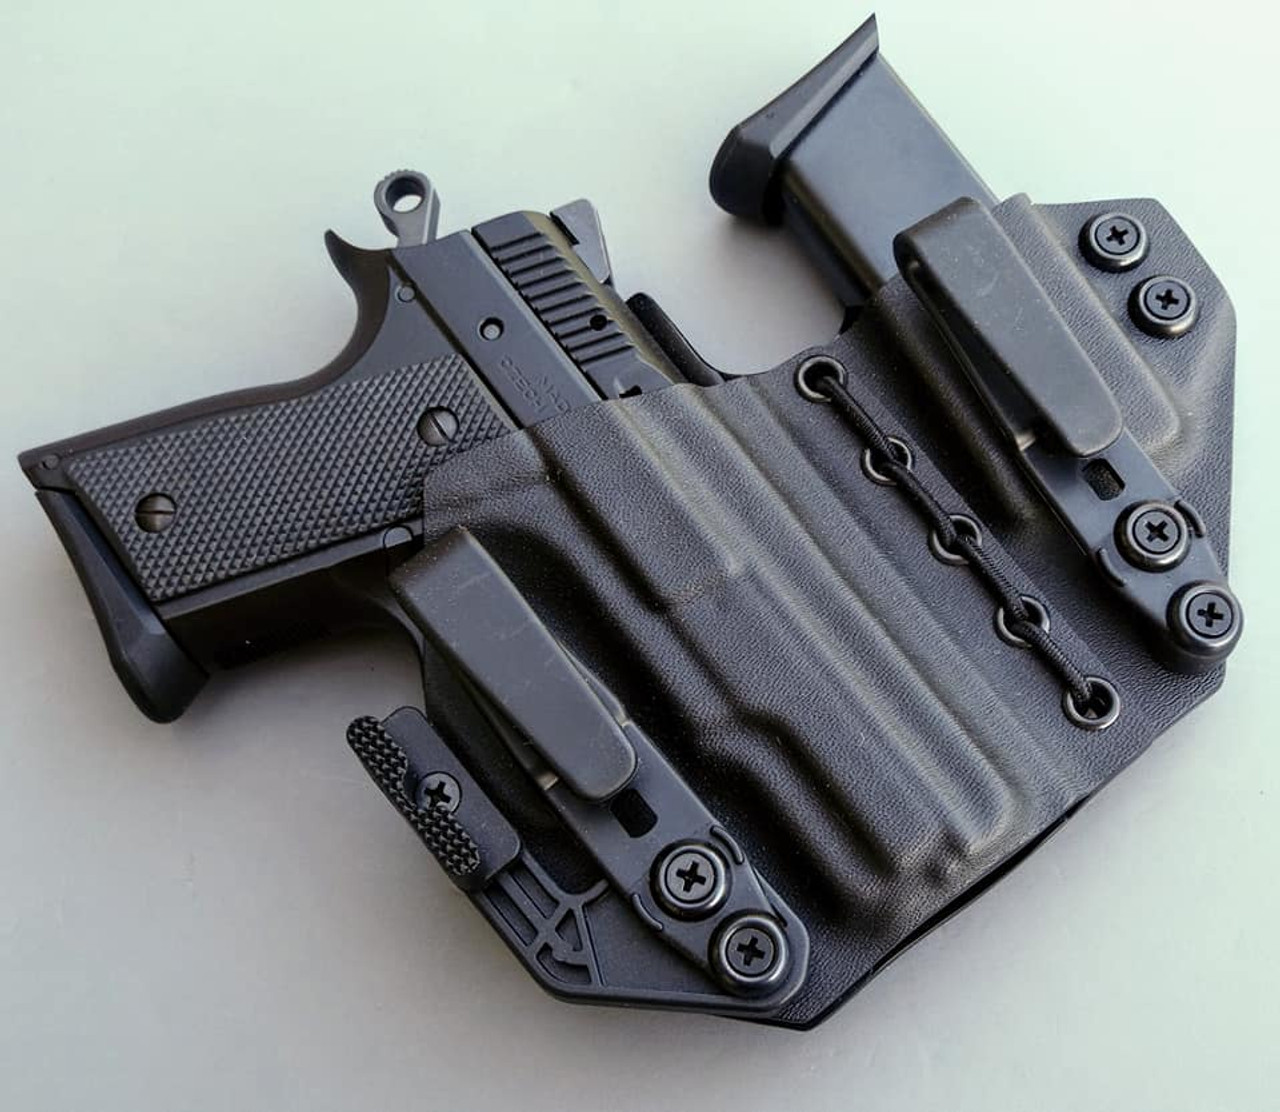 CZ 2075 Rami Flexible Appendix Carry Rig